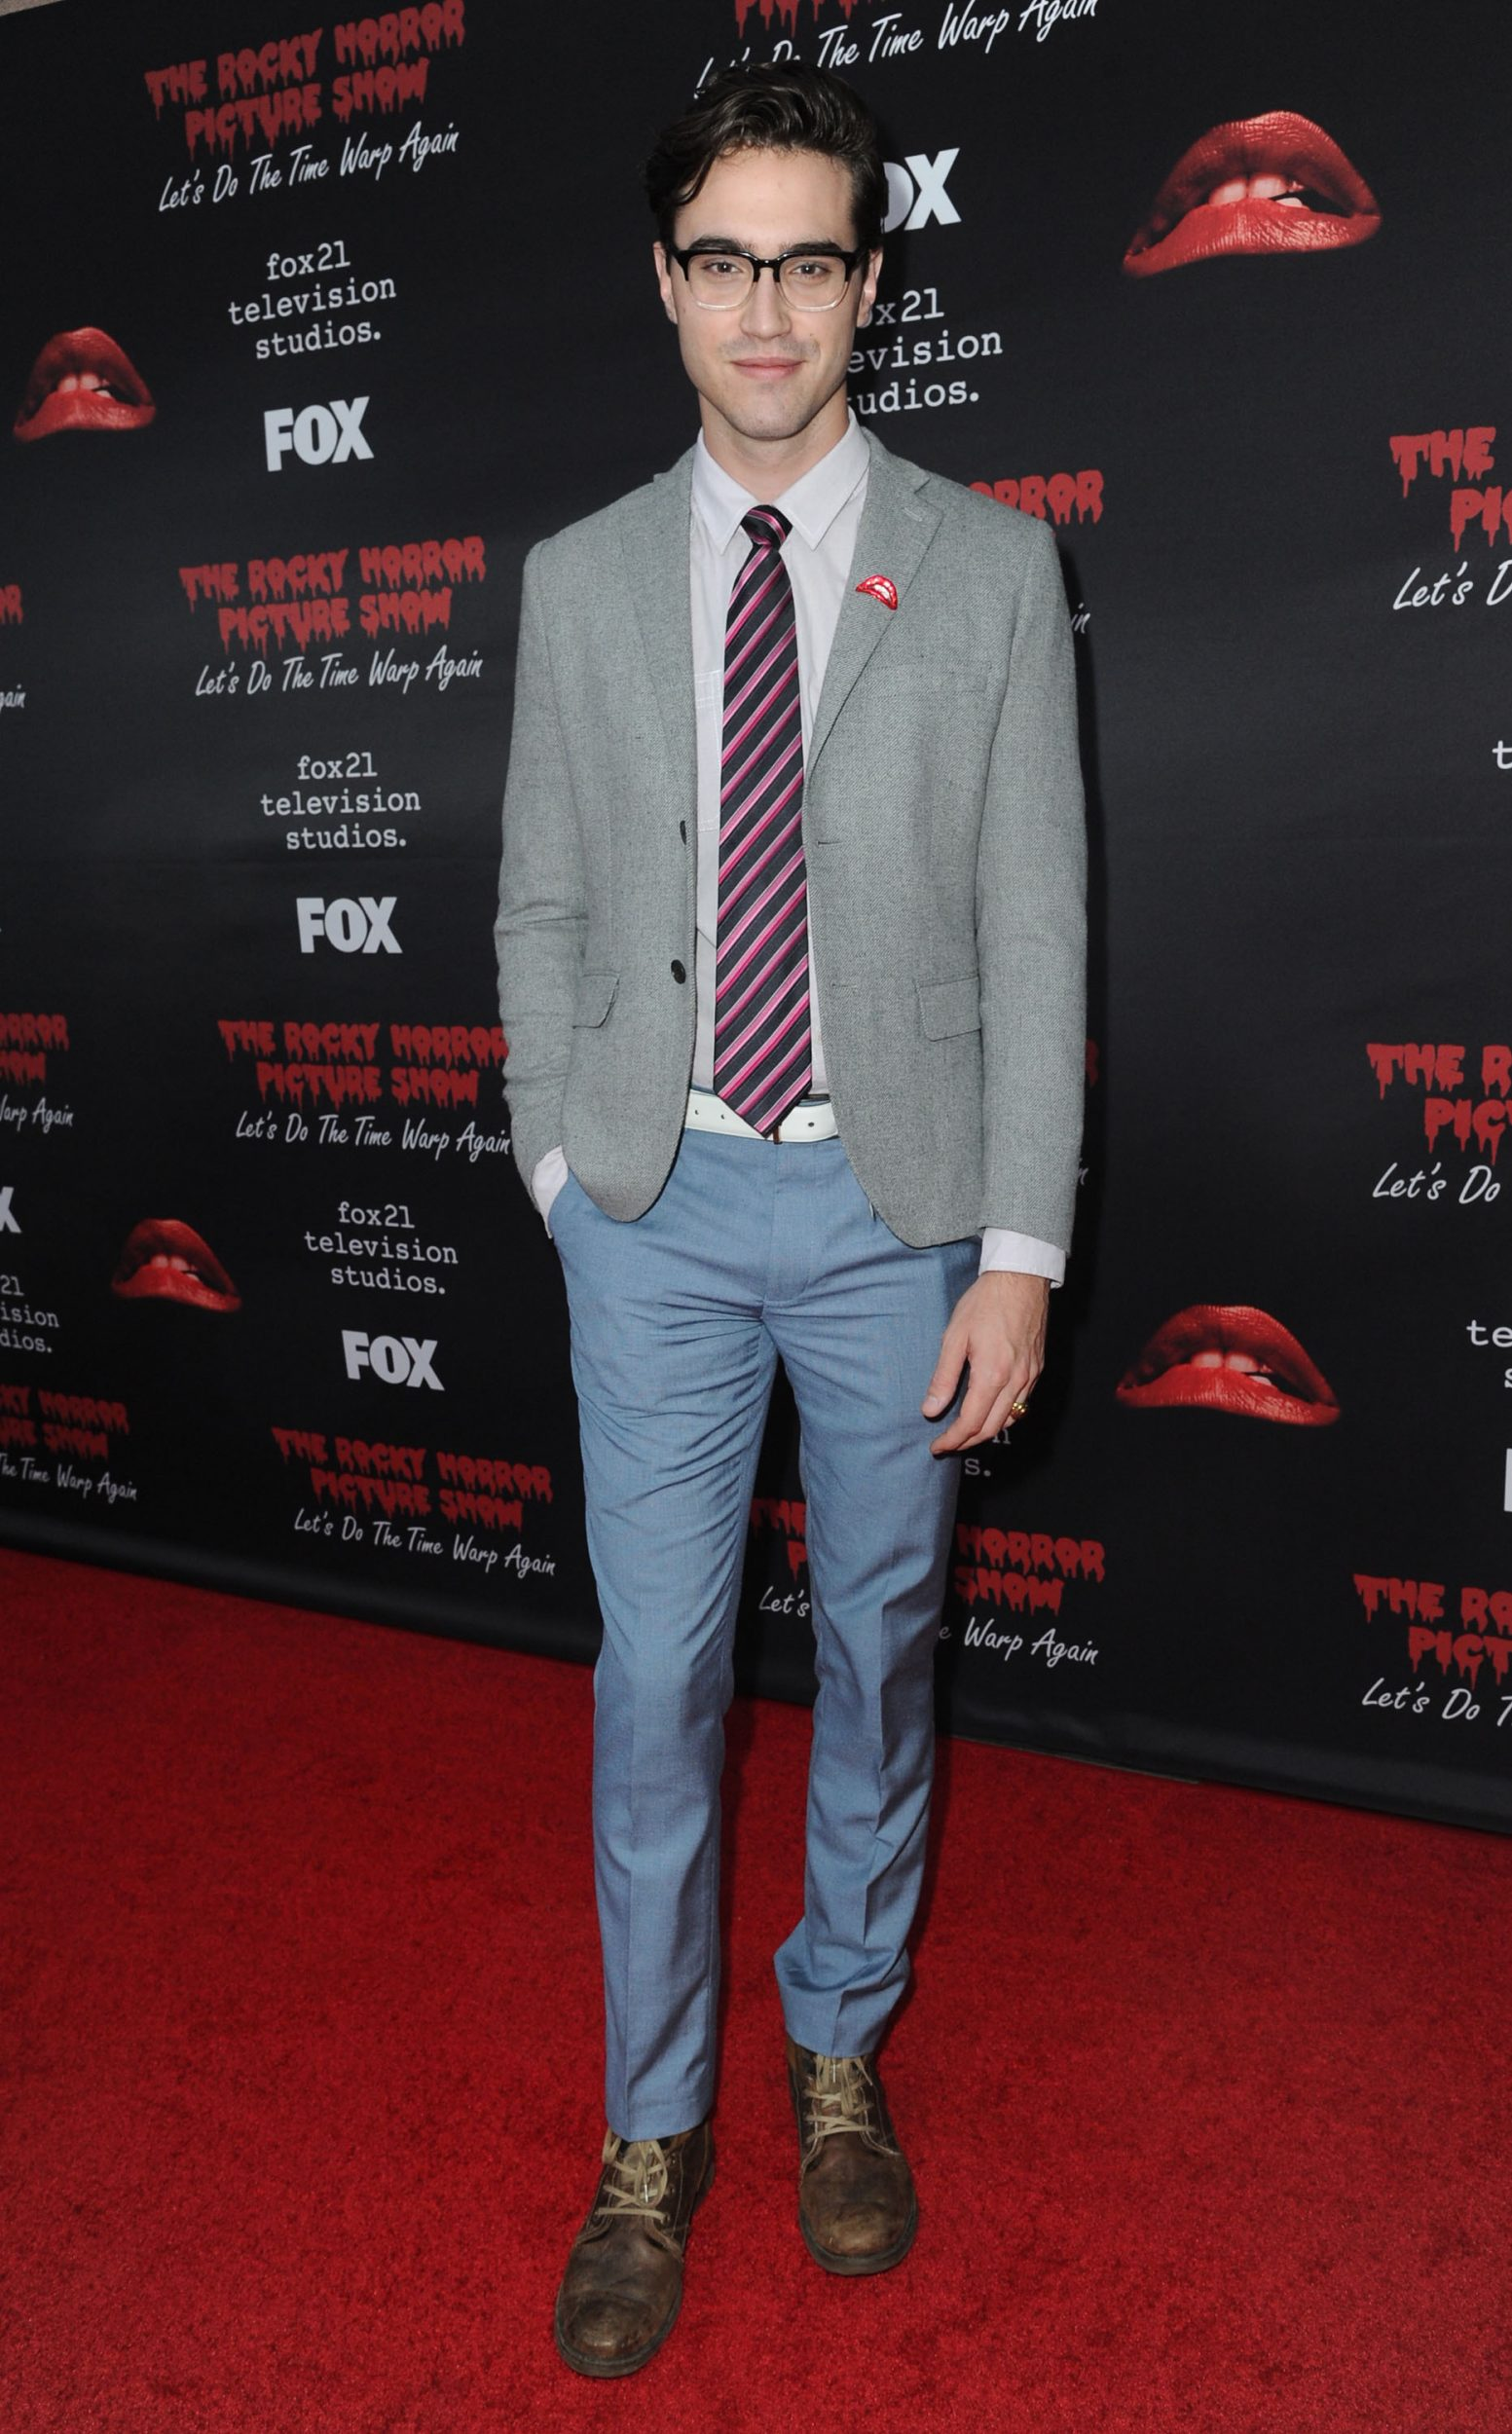 THE ROCKY HORROR PICTURE SHOW: Let's Do The Time Warp Again (and Transylvanians!): Cast member Ryan MCartan arrives at THE ROCKY HORROR PICTURE SHOW: Let's Do The Time Warp Again (and Transylvanians!) premiere party red carpet at The Roxy on Thursday, Oct. 13, in Los Angeles, CA. THE ROCKY HORROR PICTURE SHOW: Let's Do The Time Warp Again (And Transylvanians!) premieres Thursday, Oct. 20 (8:00-10:00 PM ET/PT) on FOX. © 2016 FOX BROADCASTING CR: Richard Shotwell/FOX